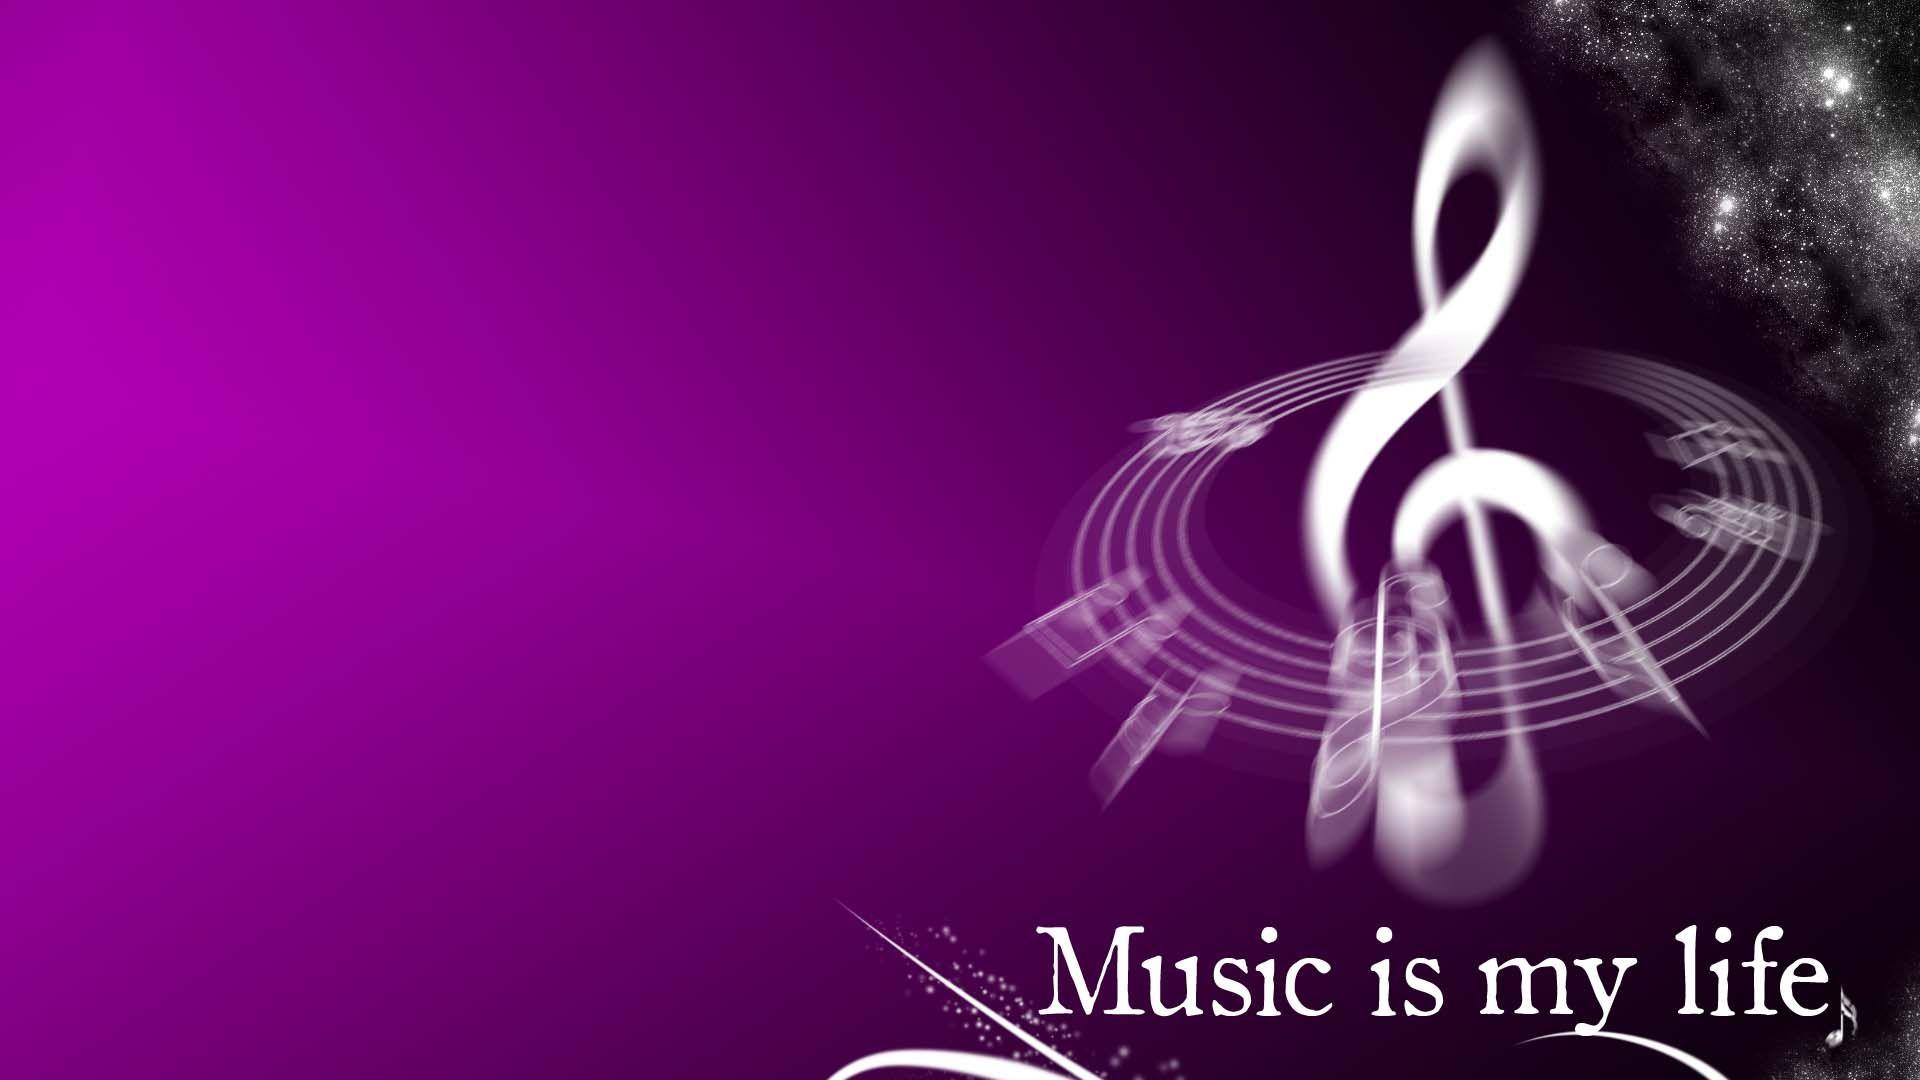 Life Is Music Wallpapers Wallpaper Cave